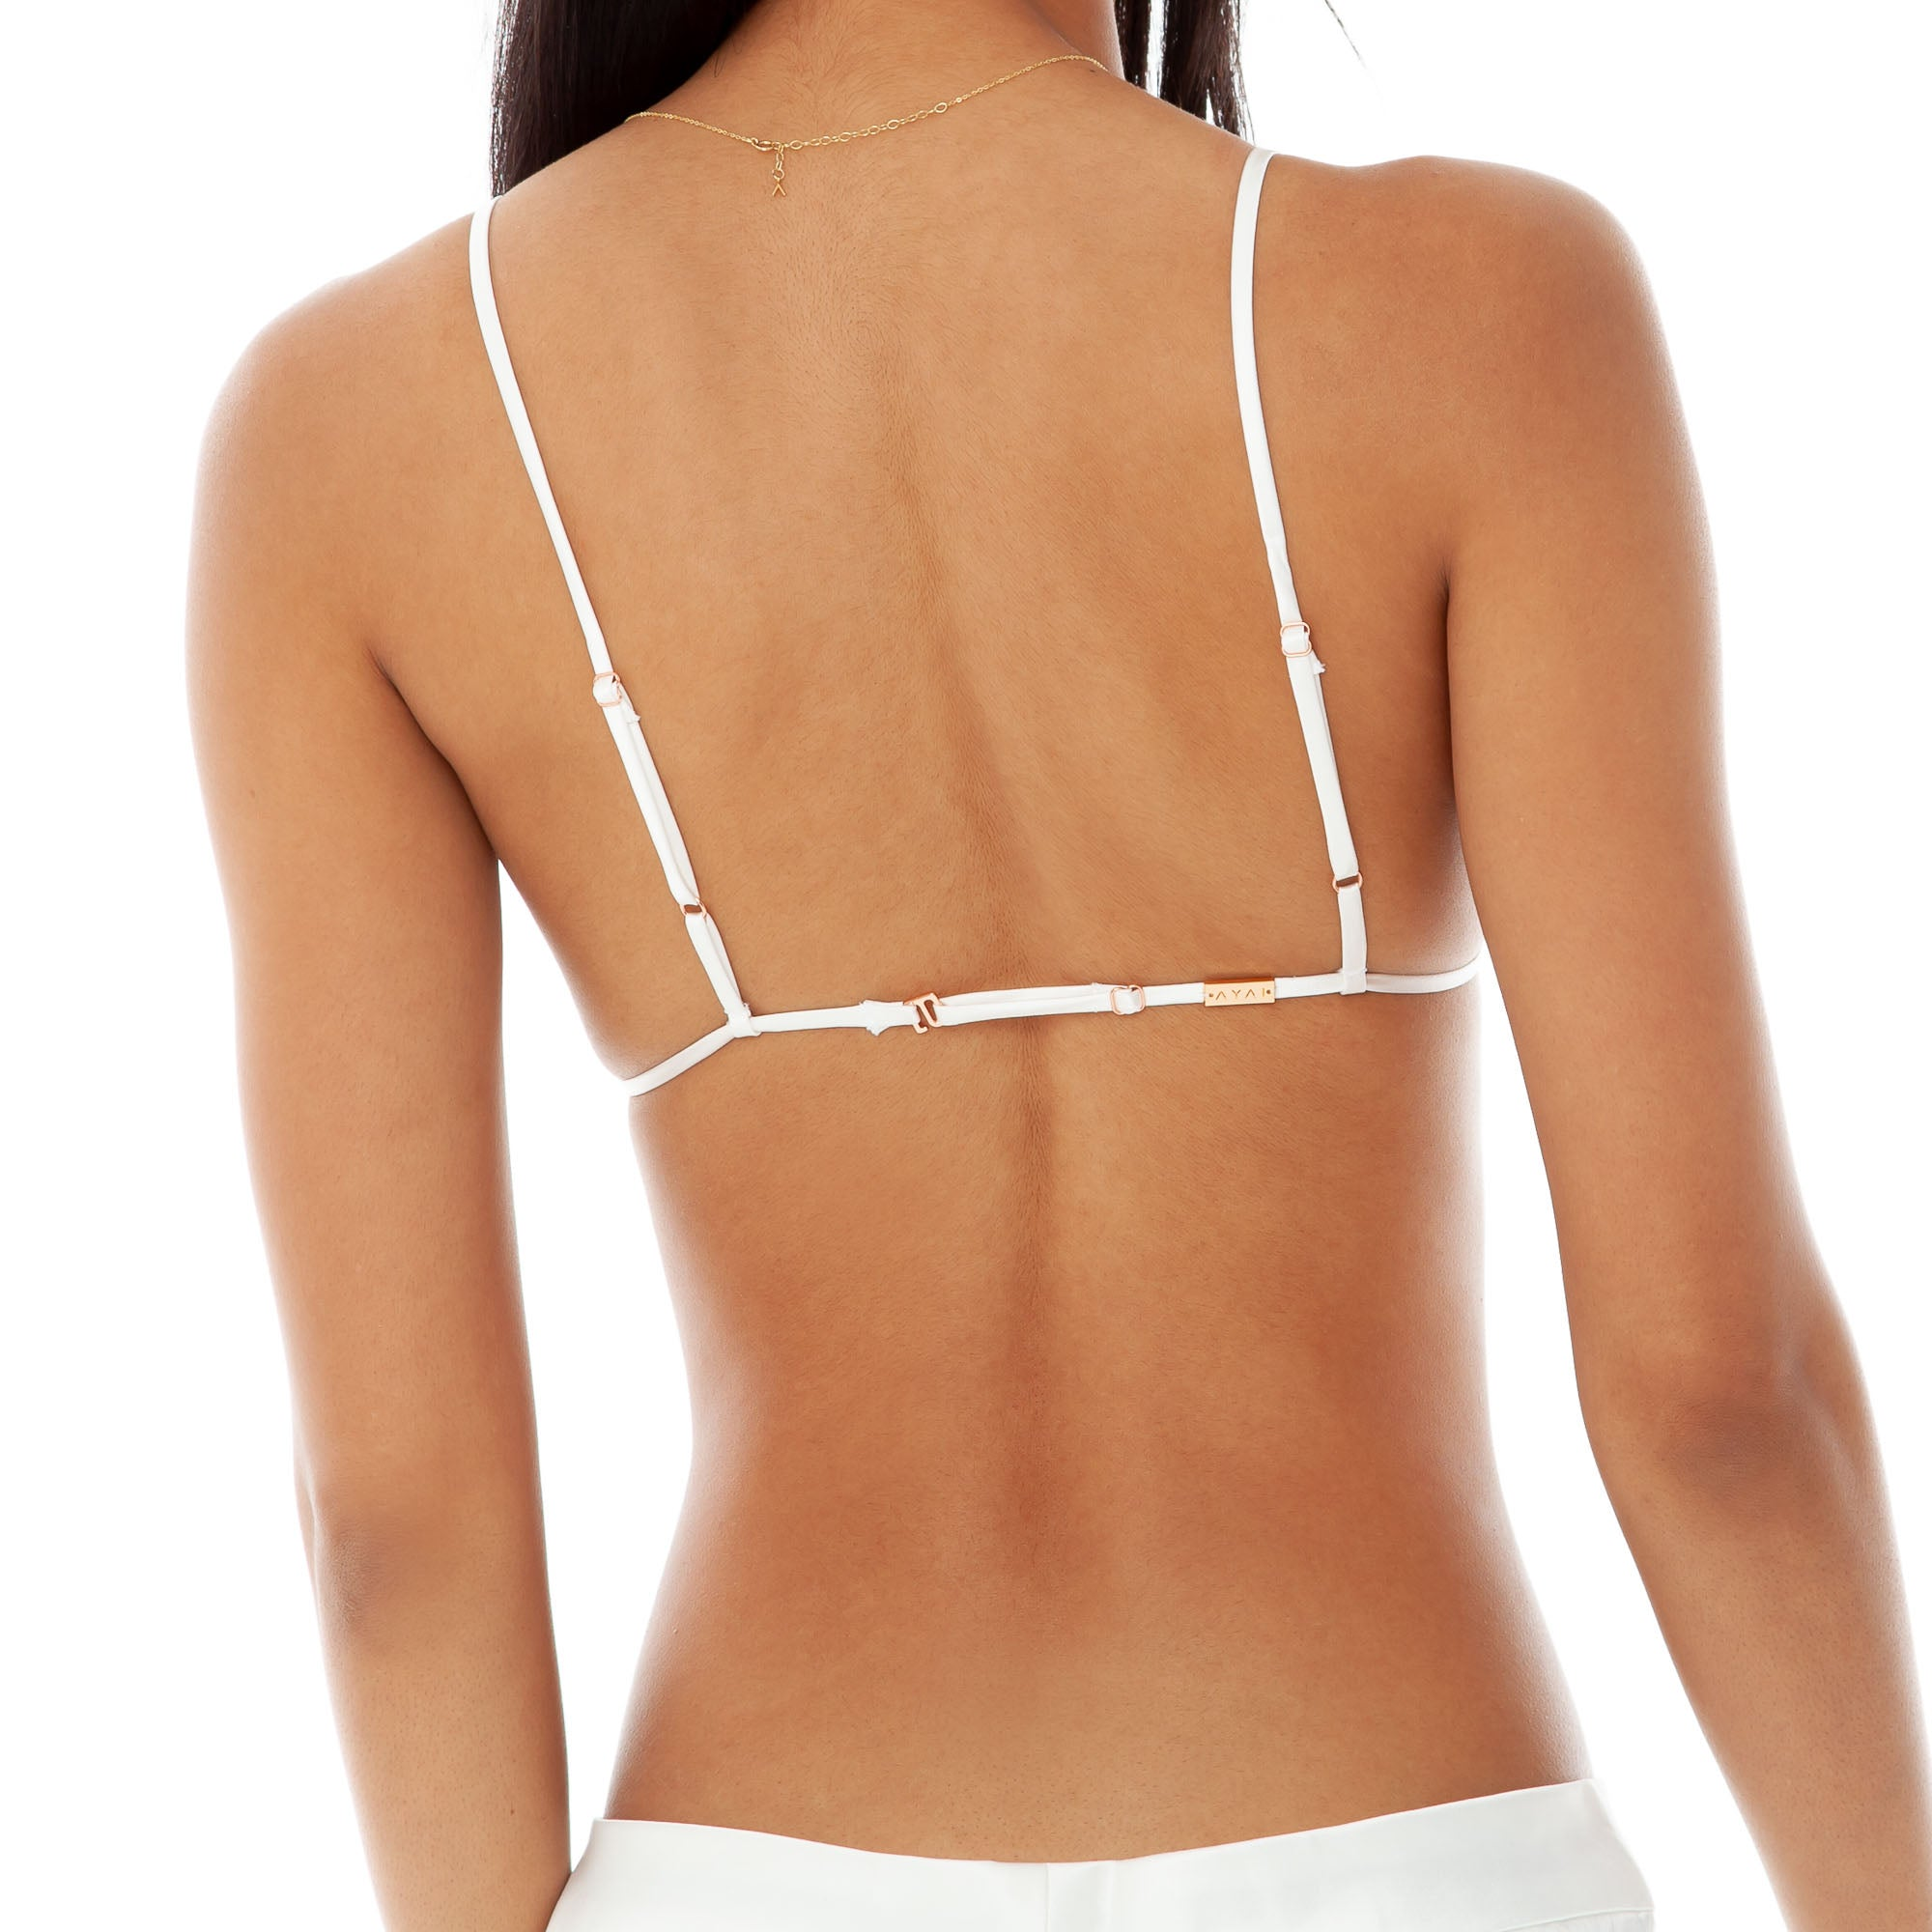 Are You Am I - Lell String Bra **white